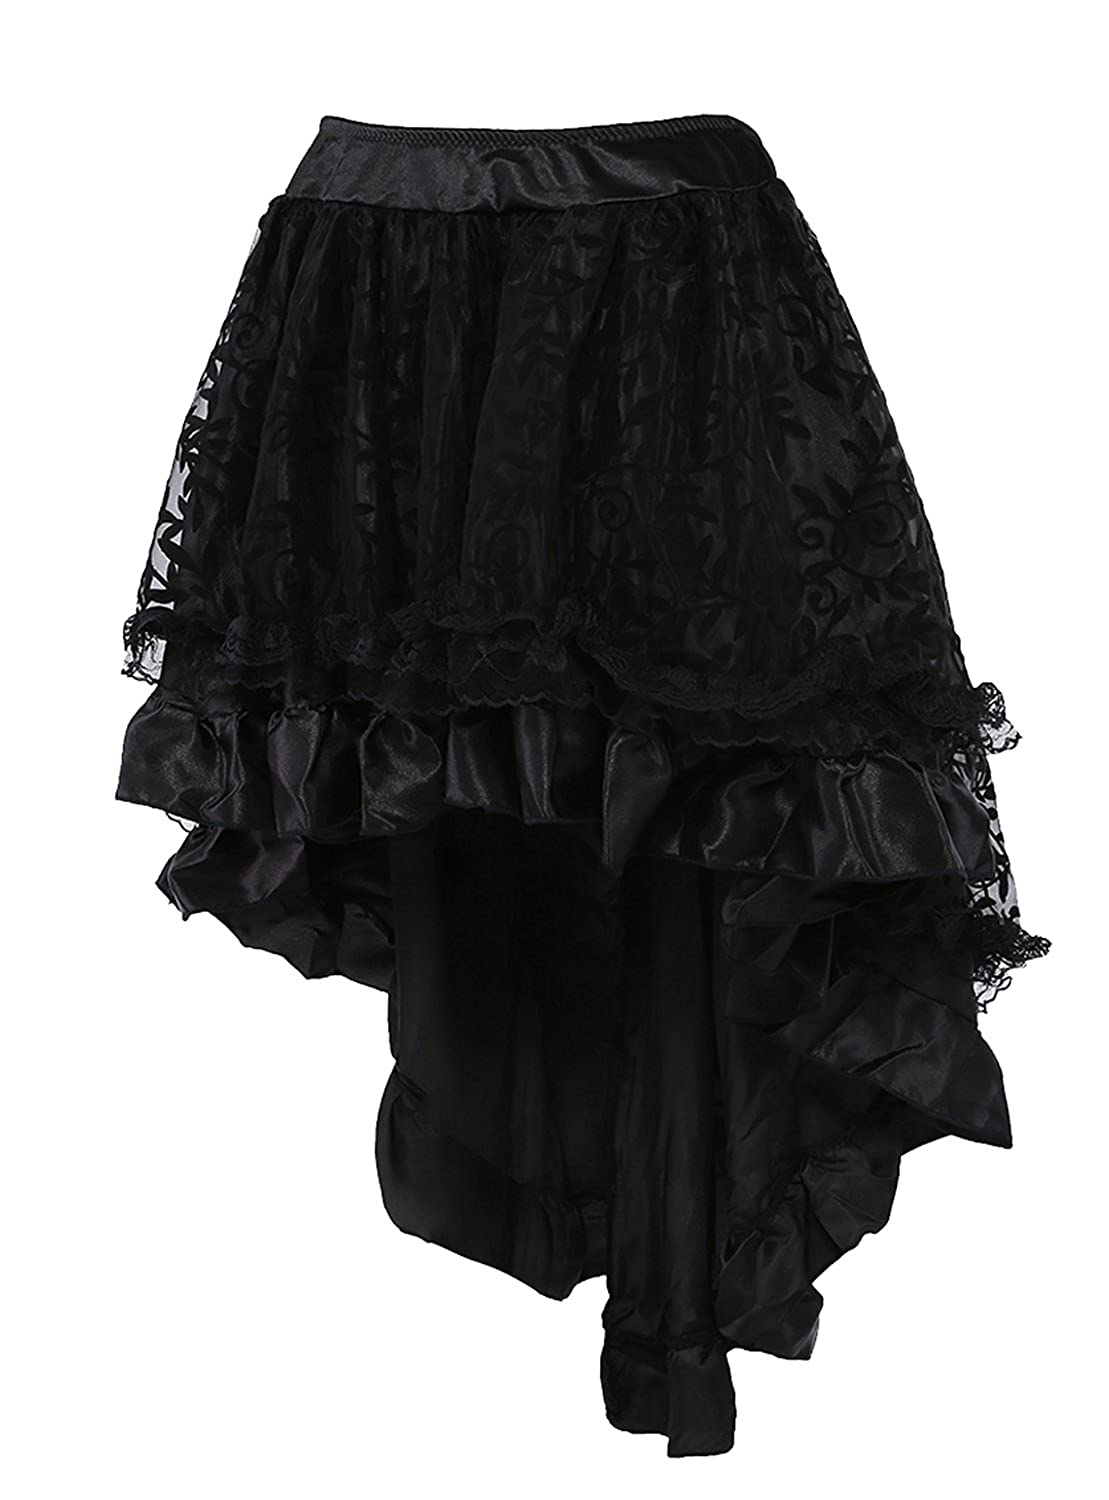 Steampunk Plus Size Clothing  Lace Asymmetrical High Low Corset Skirt $19.99 AT vintagedancer.com